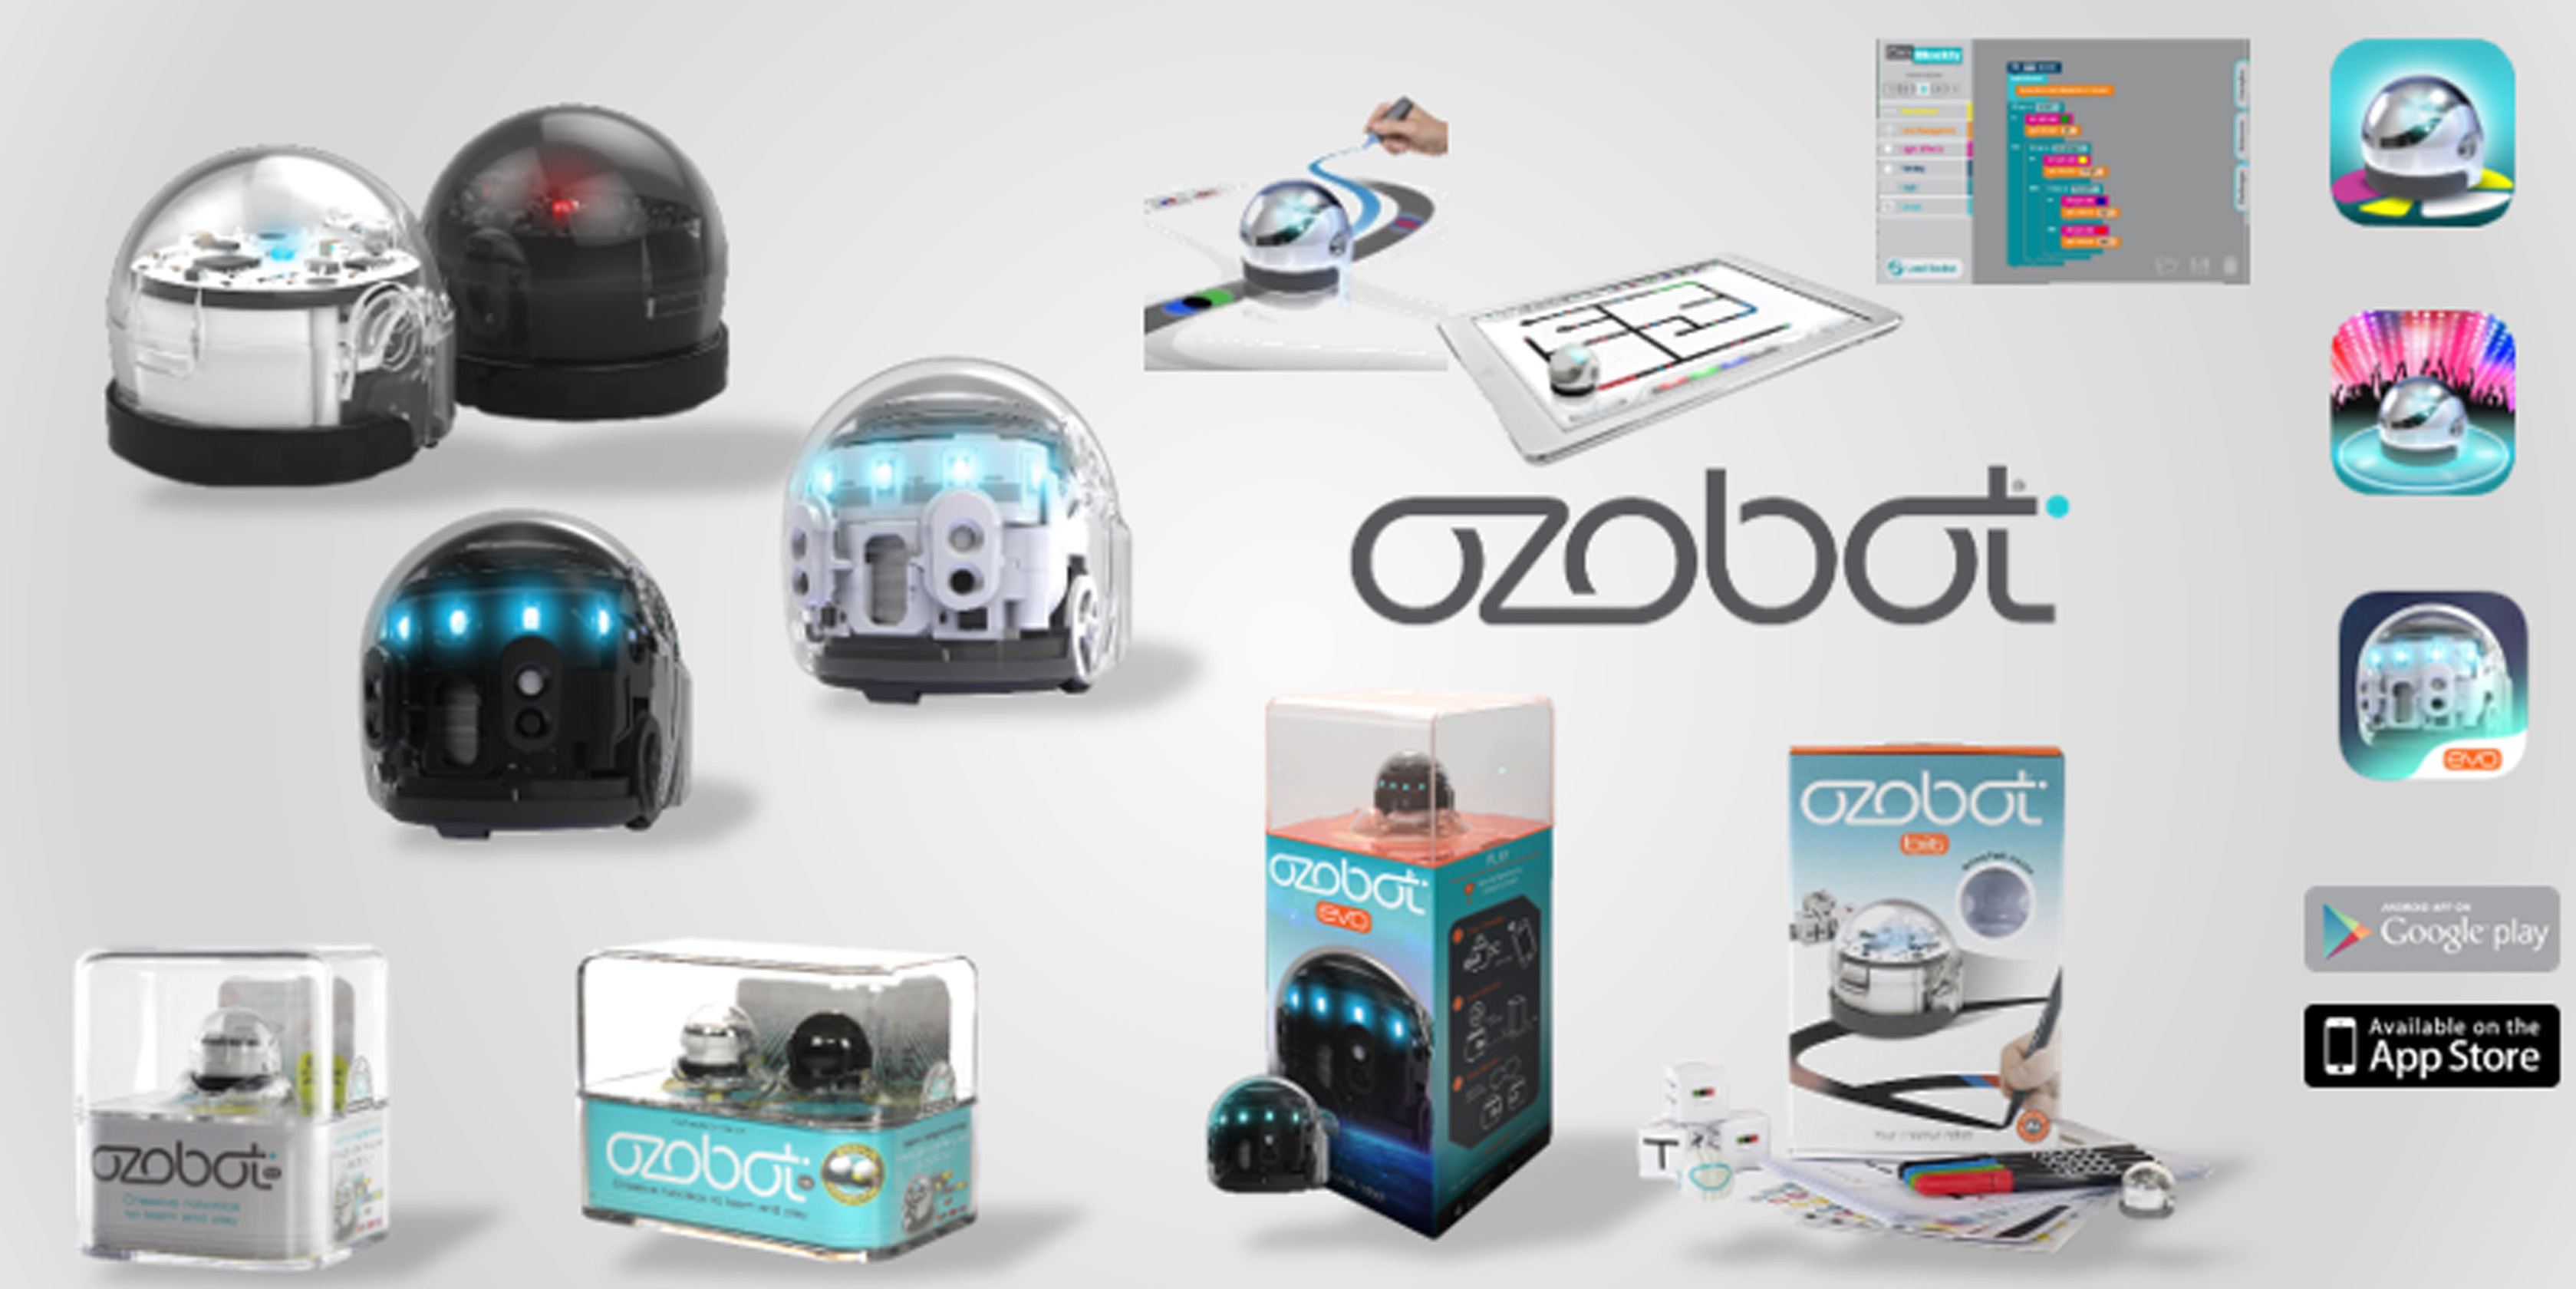 Ozobot Gamme